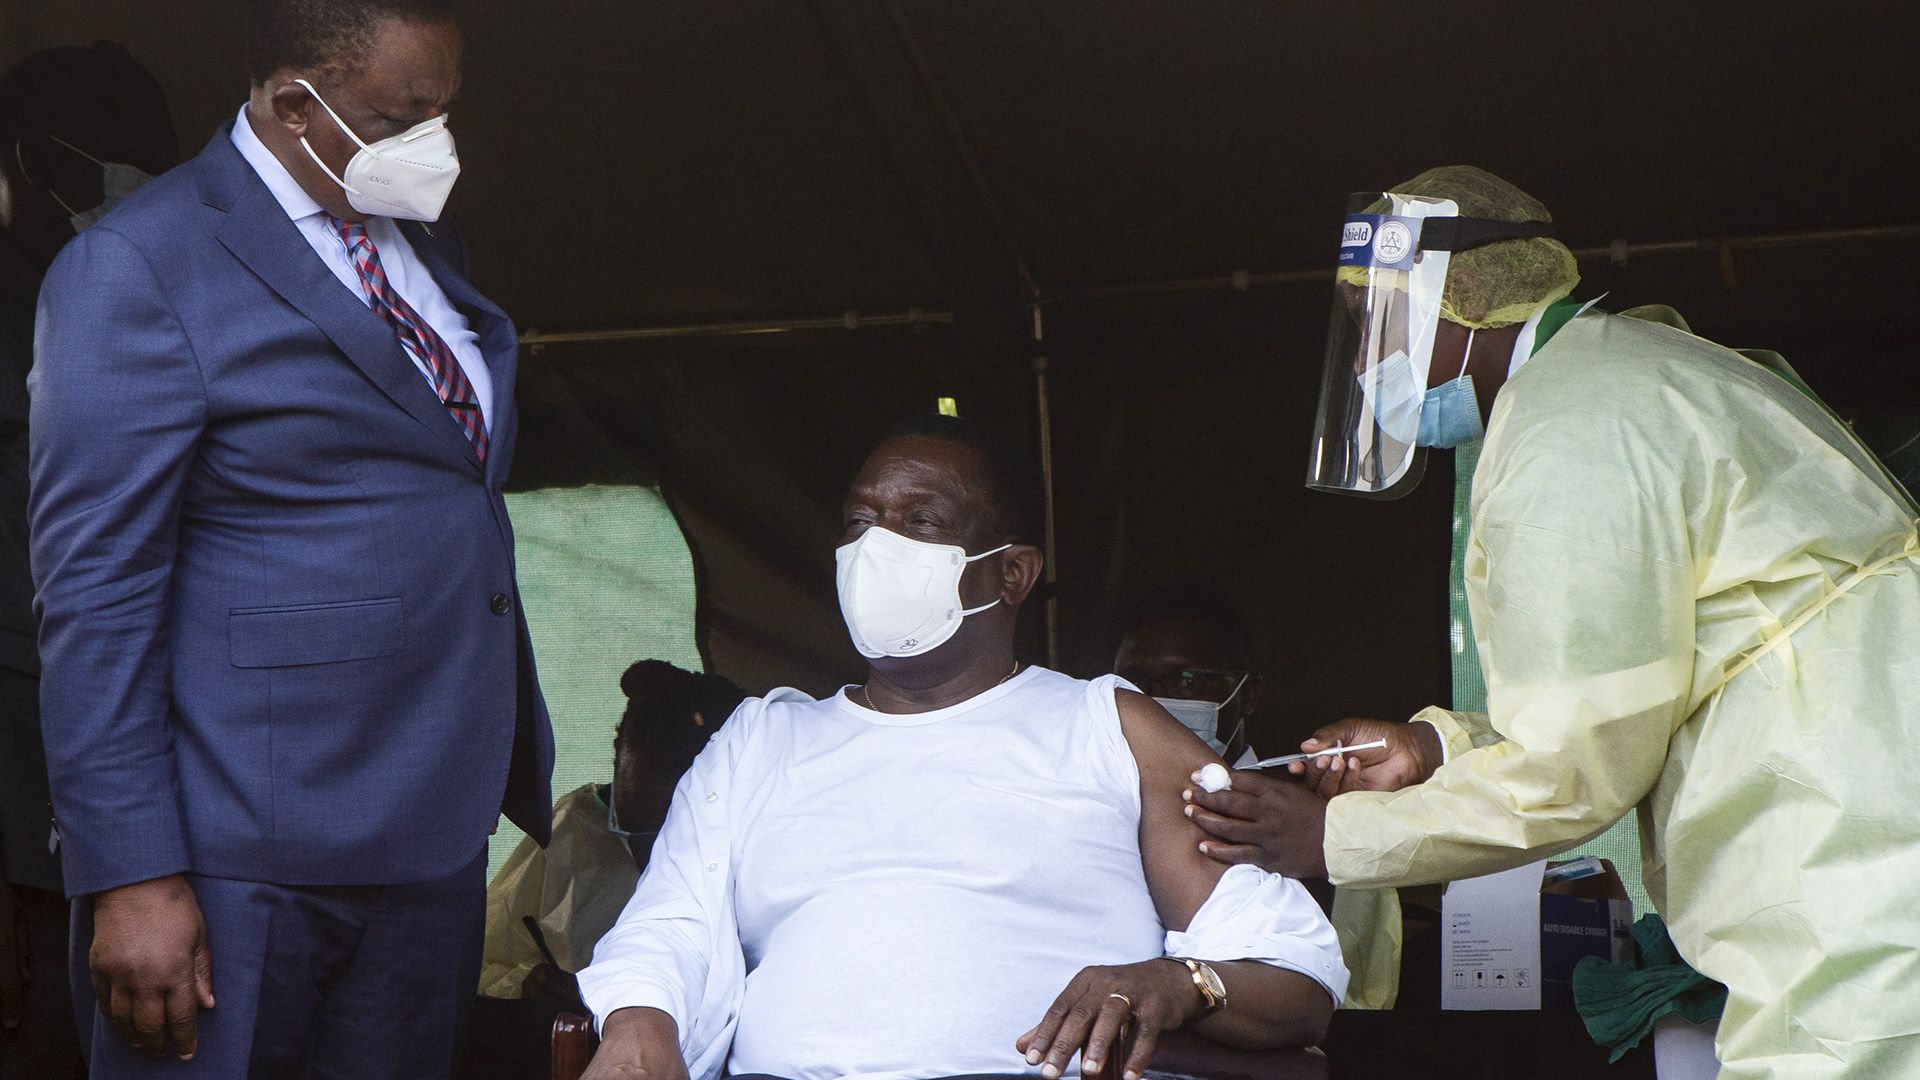 Zimbabwean President Fears U.S., West Will Use Covid-19 Vaccines To Topple Him